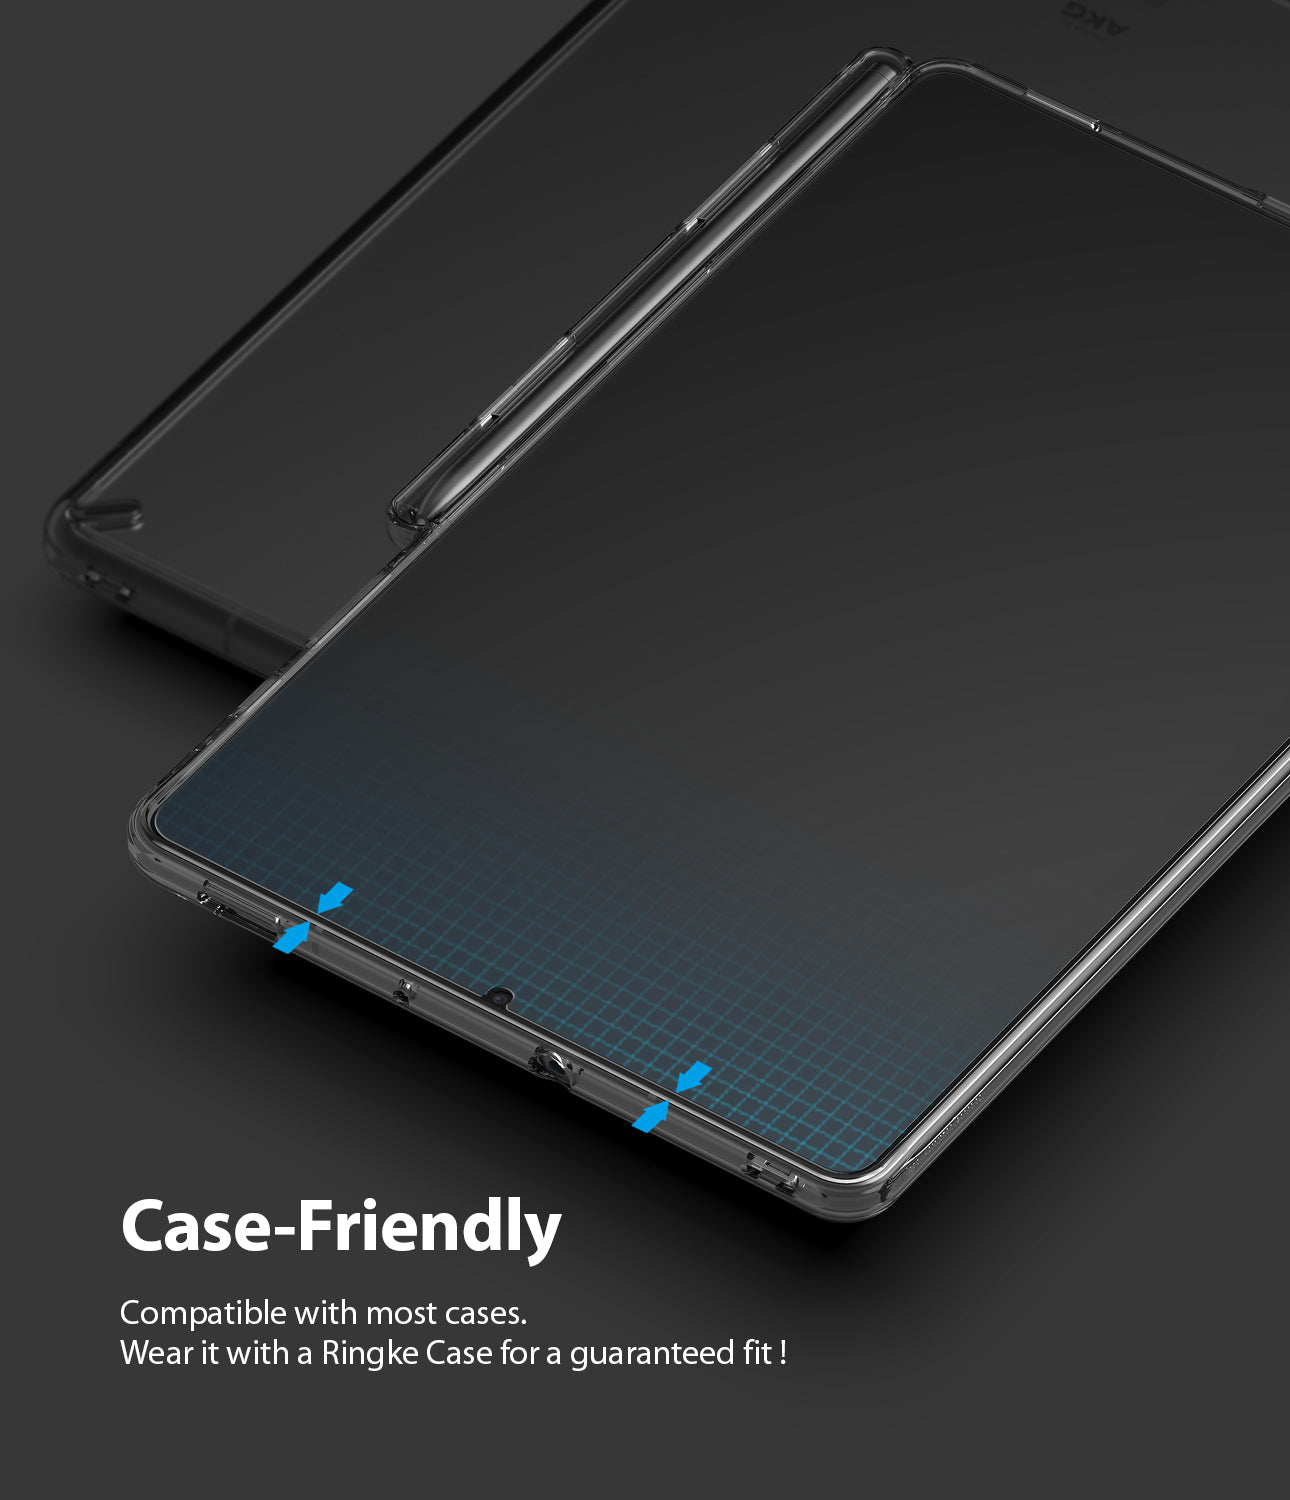 case friendly fit - compatible with most cases